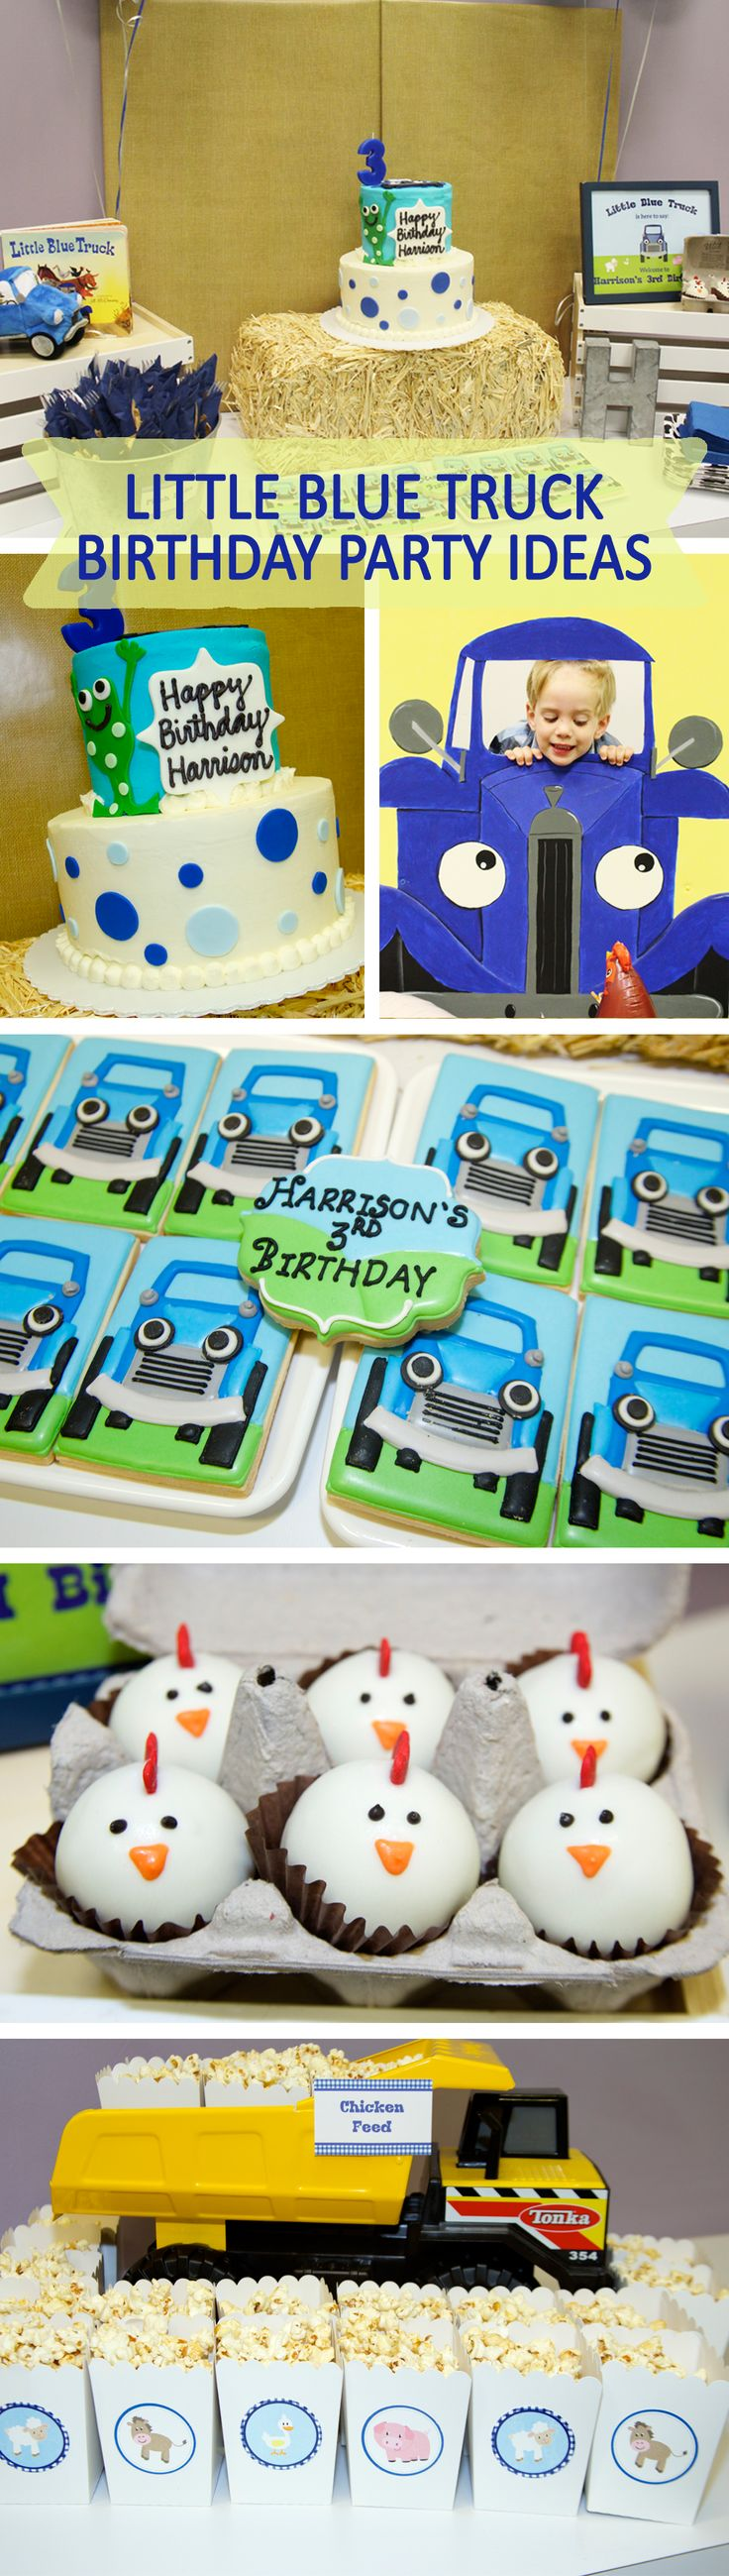 Little blue truck brithday party ideas, Little blue truck birthday theme party…